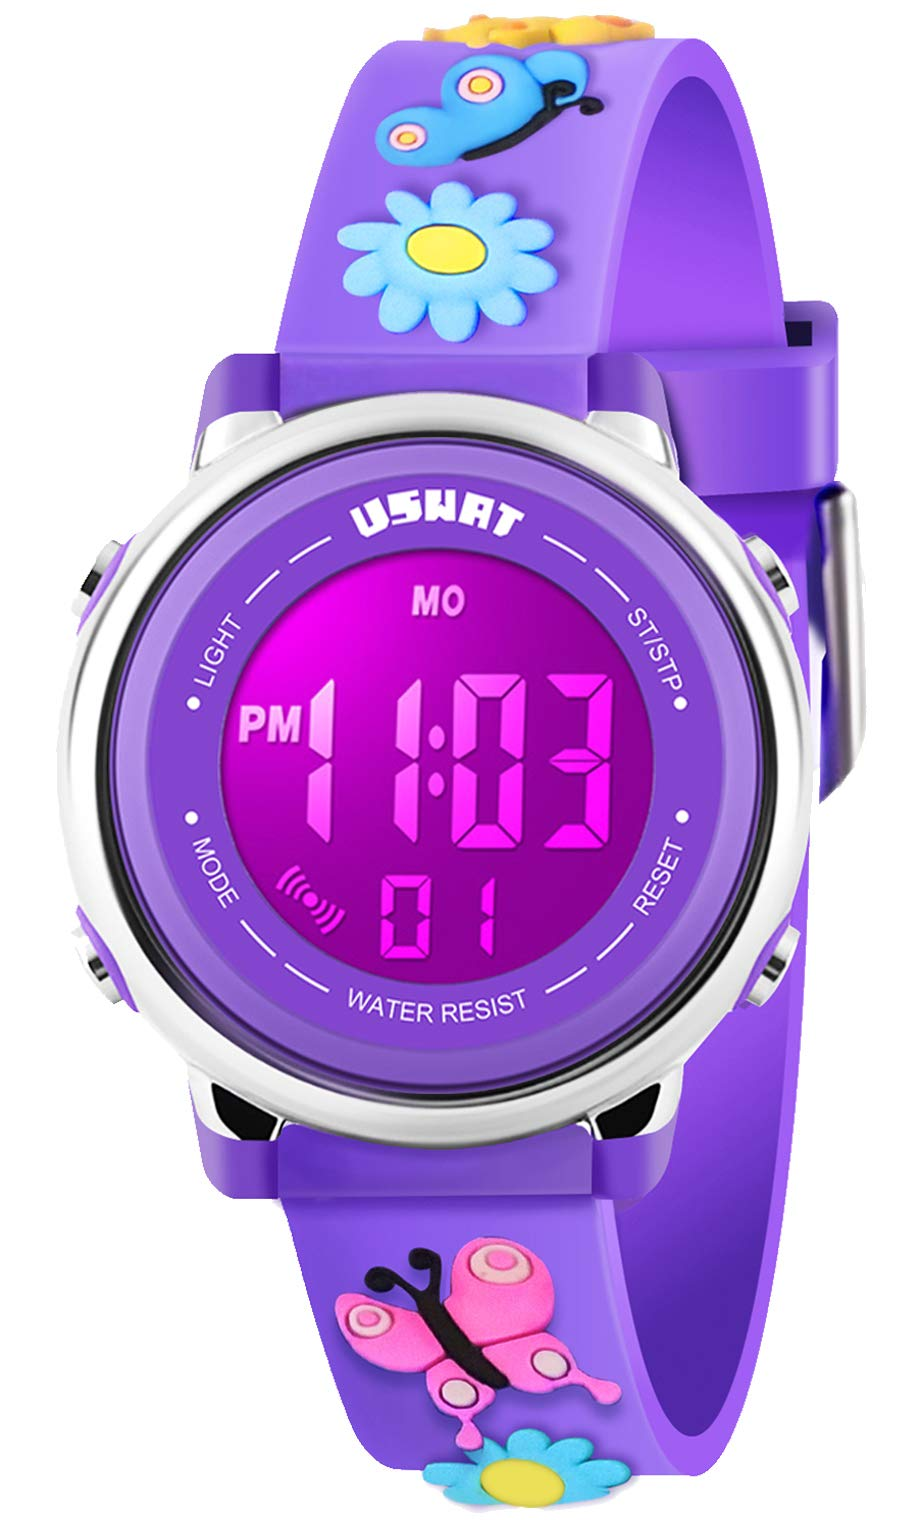 Kid Watch 3D Cute Butterfly Cartoon Multi Function 50M Waterproof Sport LED Alarm Stopwatch Digital Child Wristwatch for Boy Girl Purple by USWAT